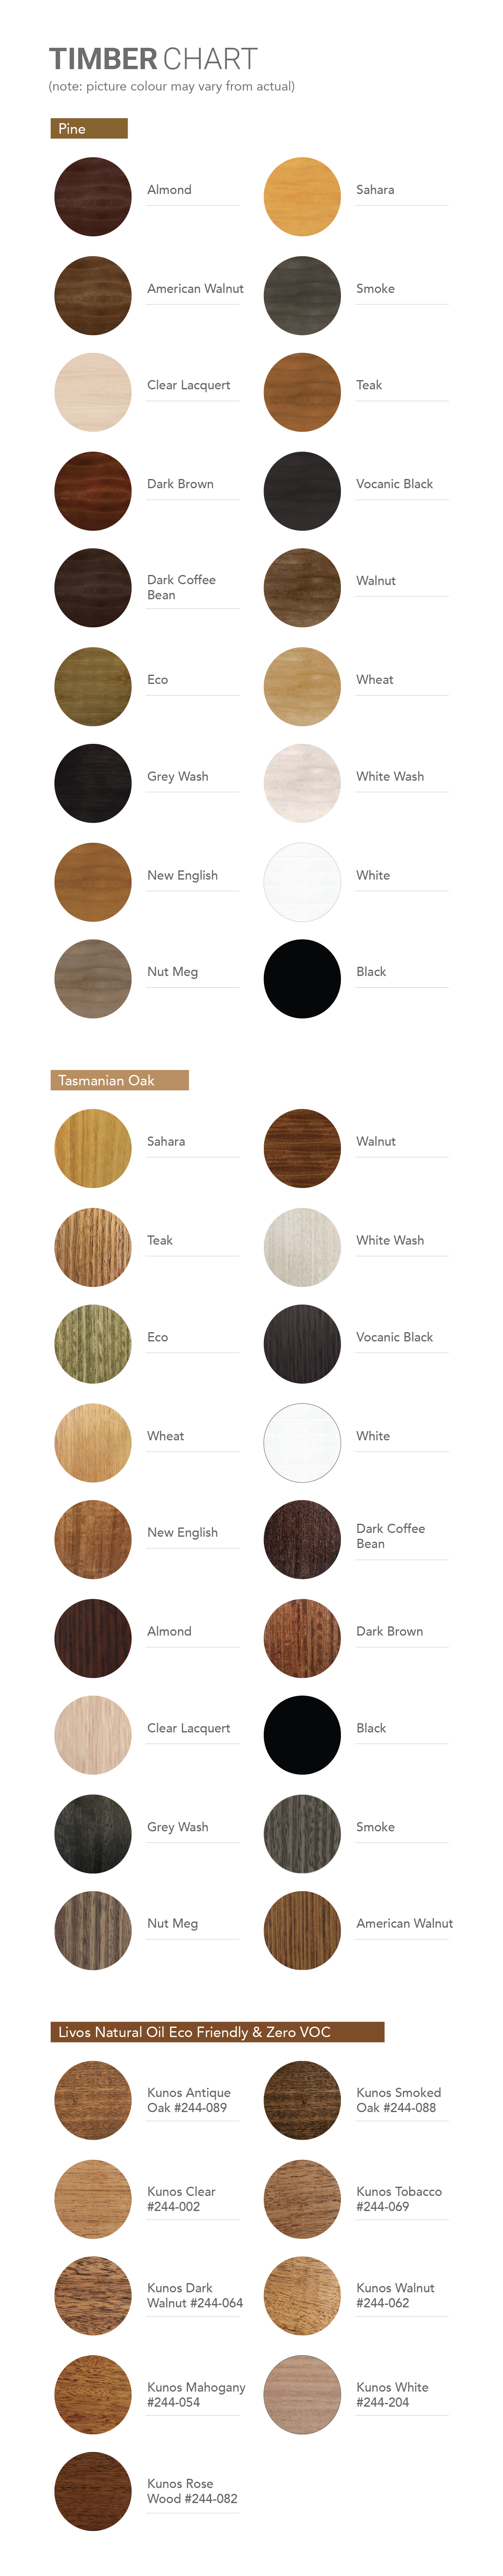 Bedworks Custom Made Timber - Colour Chart